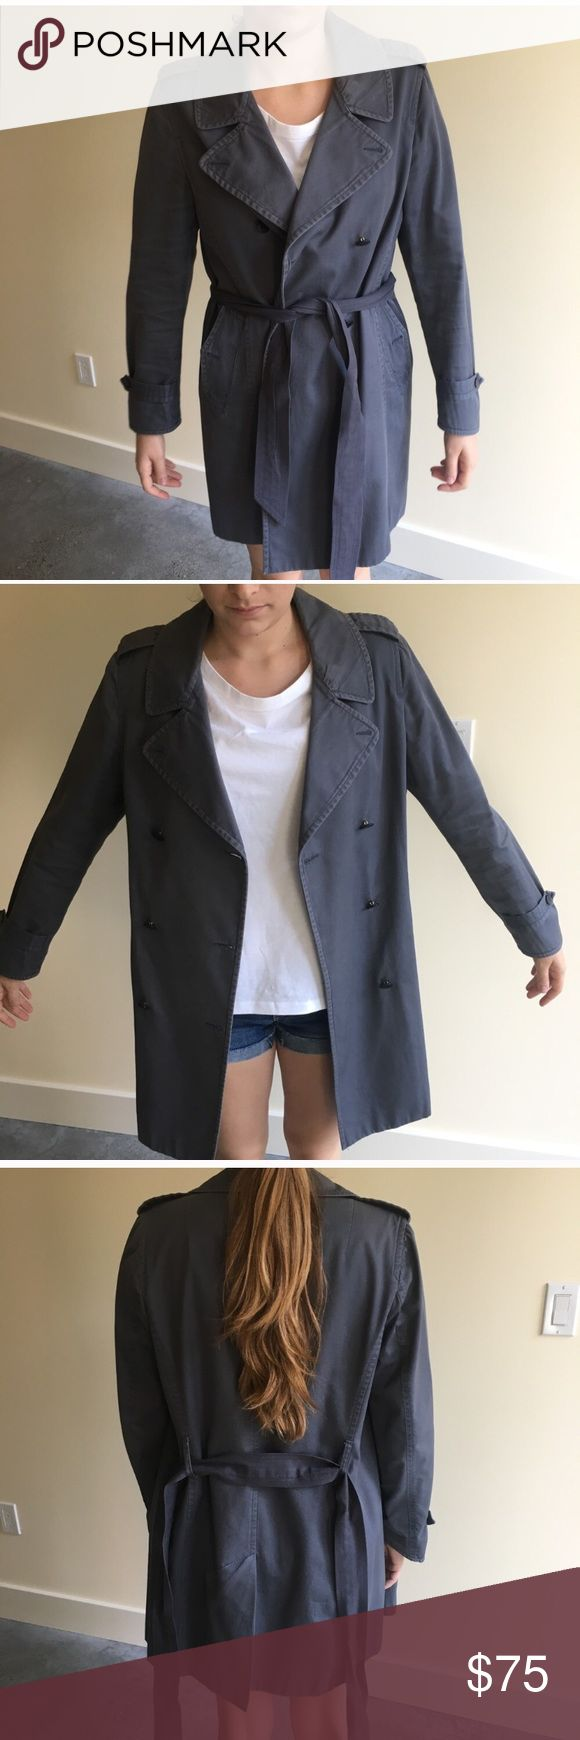 "Rag & Bone Washed trench coat Authentic. Worn but in great condition. The belt is not original, it was made by a seamstress and photos are shown. Great for casual wear or can be dressed up. This coat is way too big on me in the photos but I just wanted to give an idea of the shape. I'm 5'6"" and rough 125 lbs, I would typically wear a size 2/4. rag & bone Jackets & Coats Trench Coats"